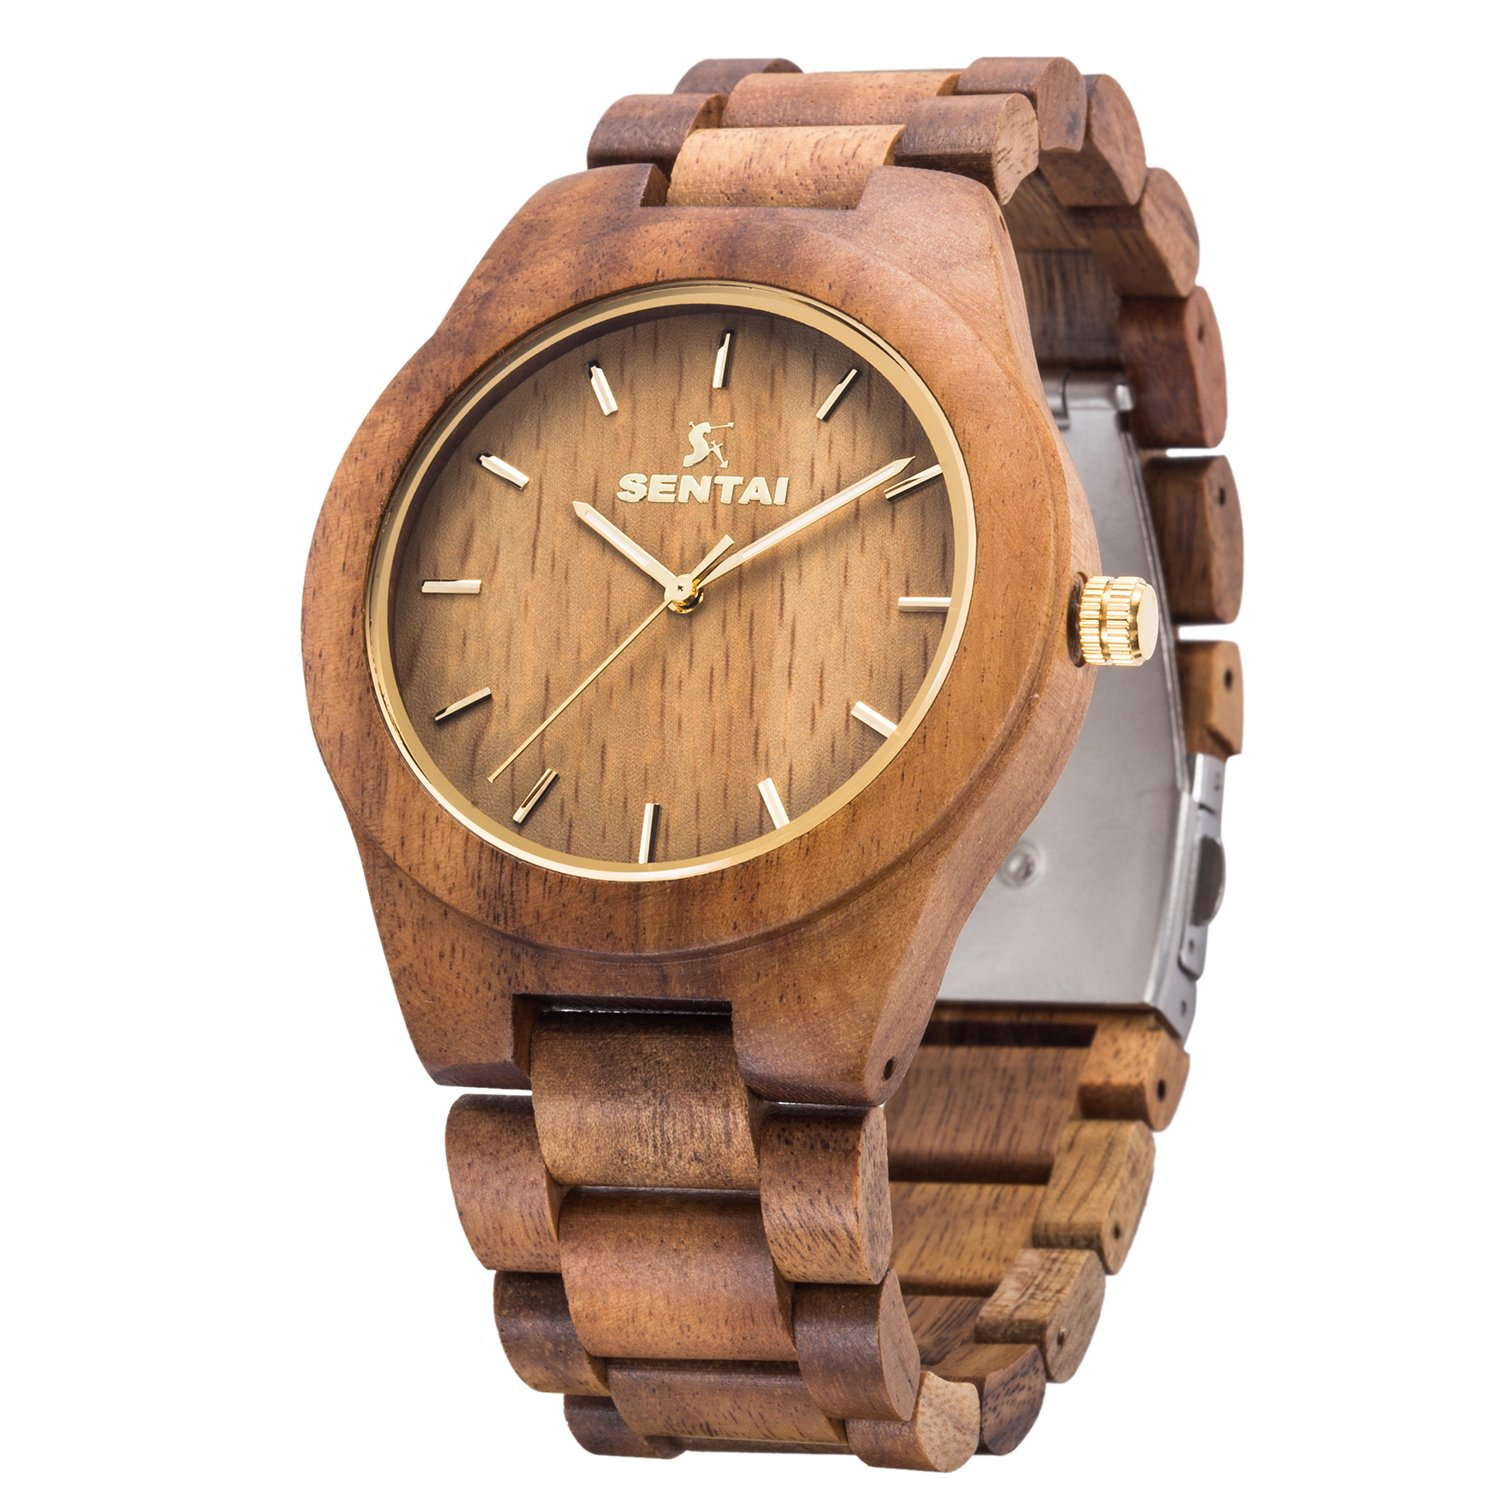 today by your modply watches fullxfull watch shop mens wood isla true engrave wooden